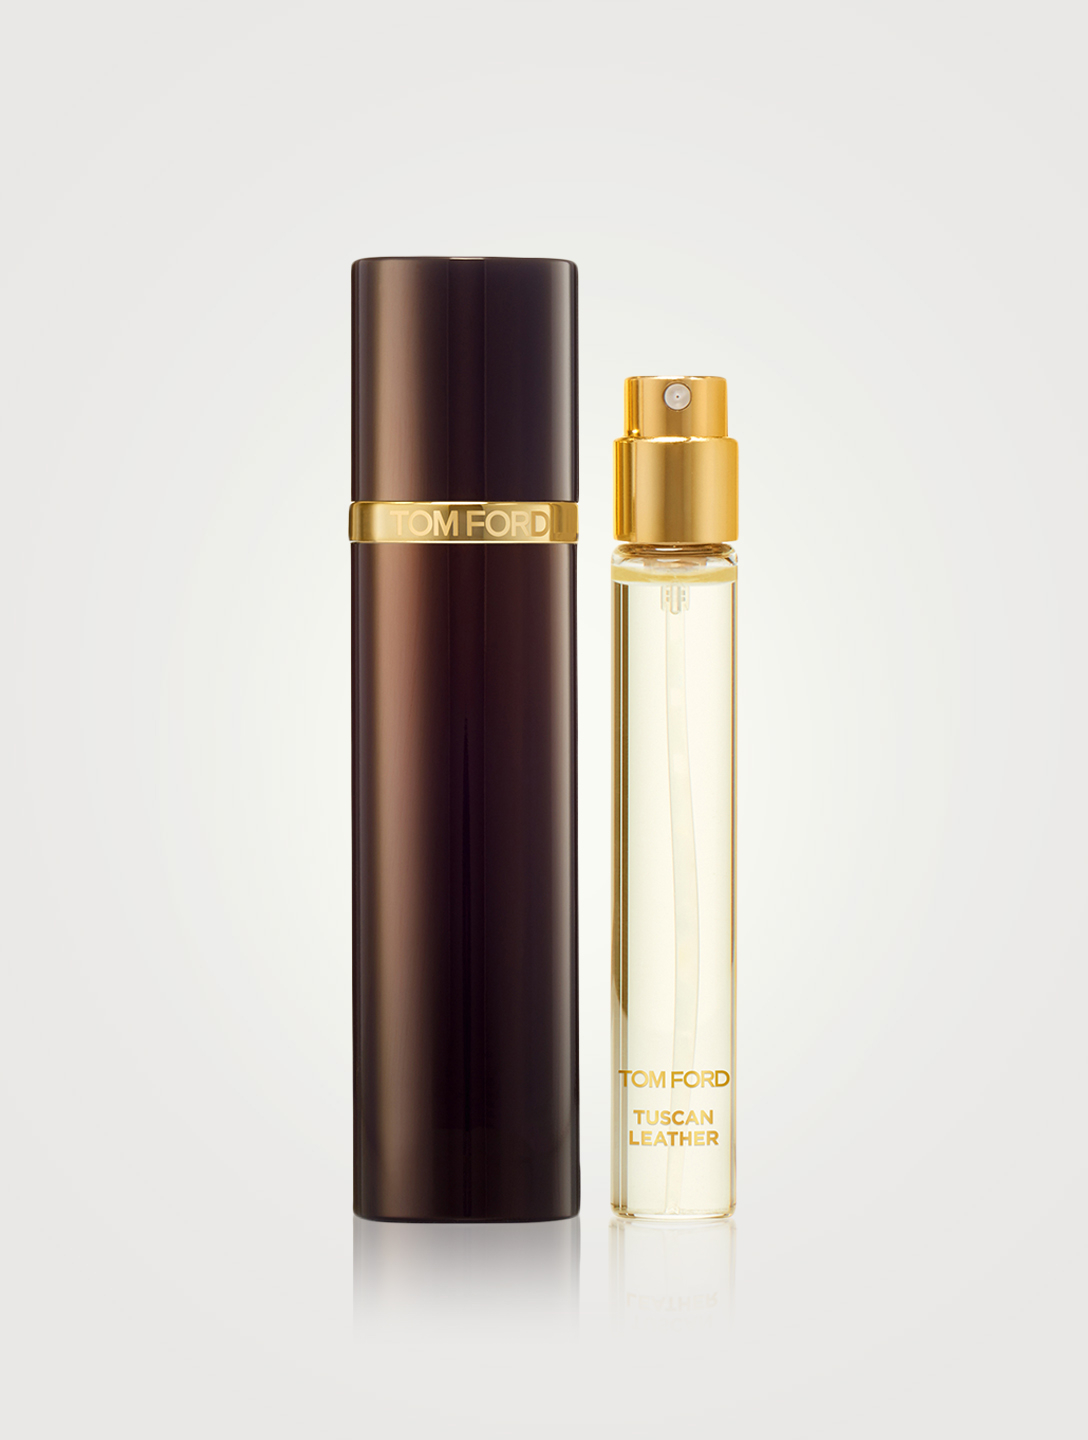 TOM FORD Tuscan Leather Atomizer Beauty